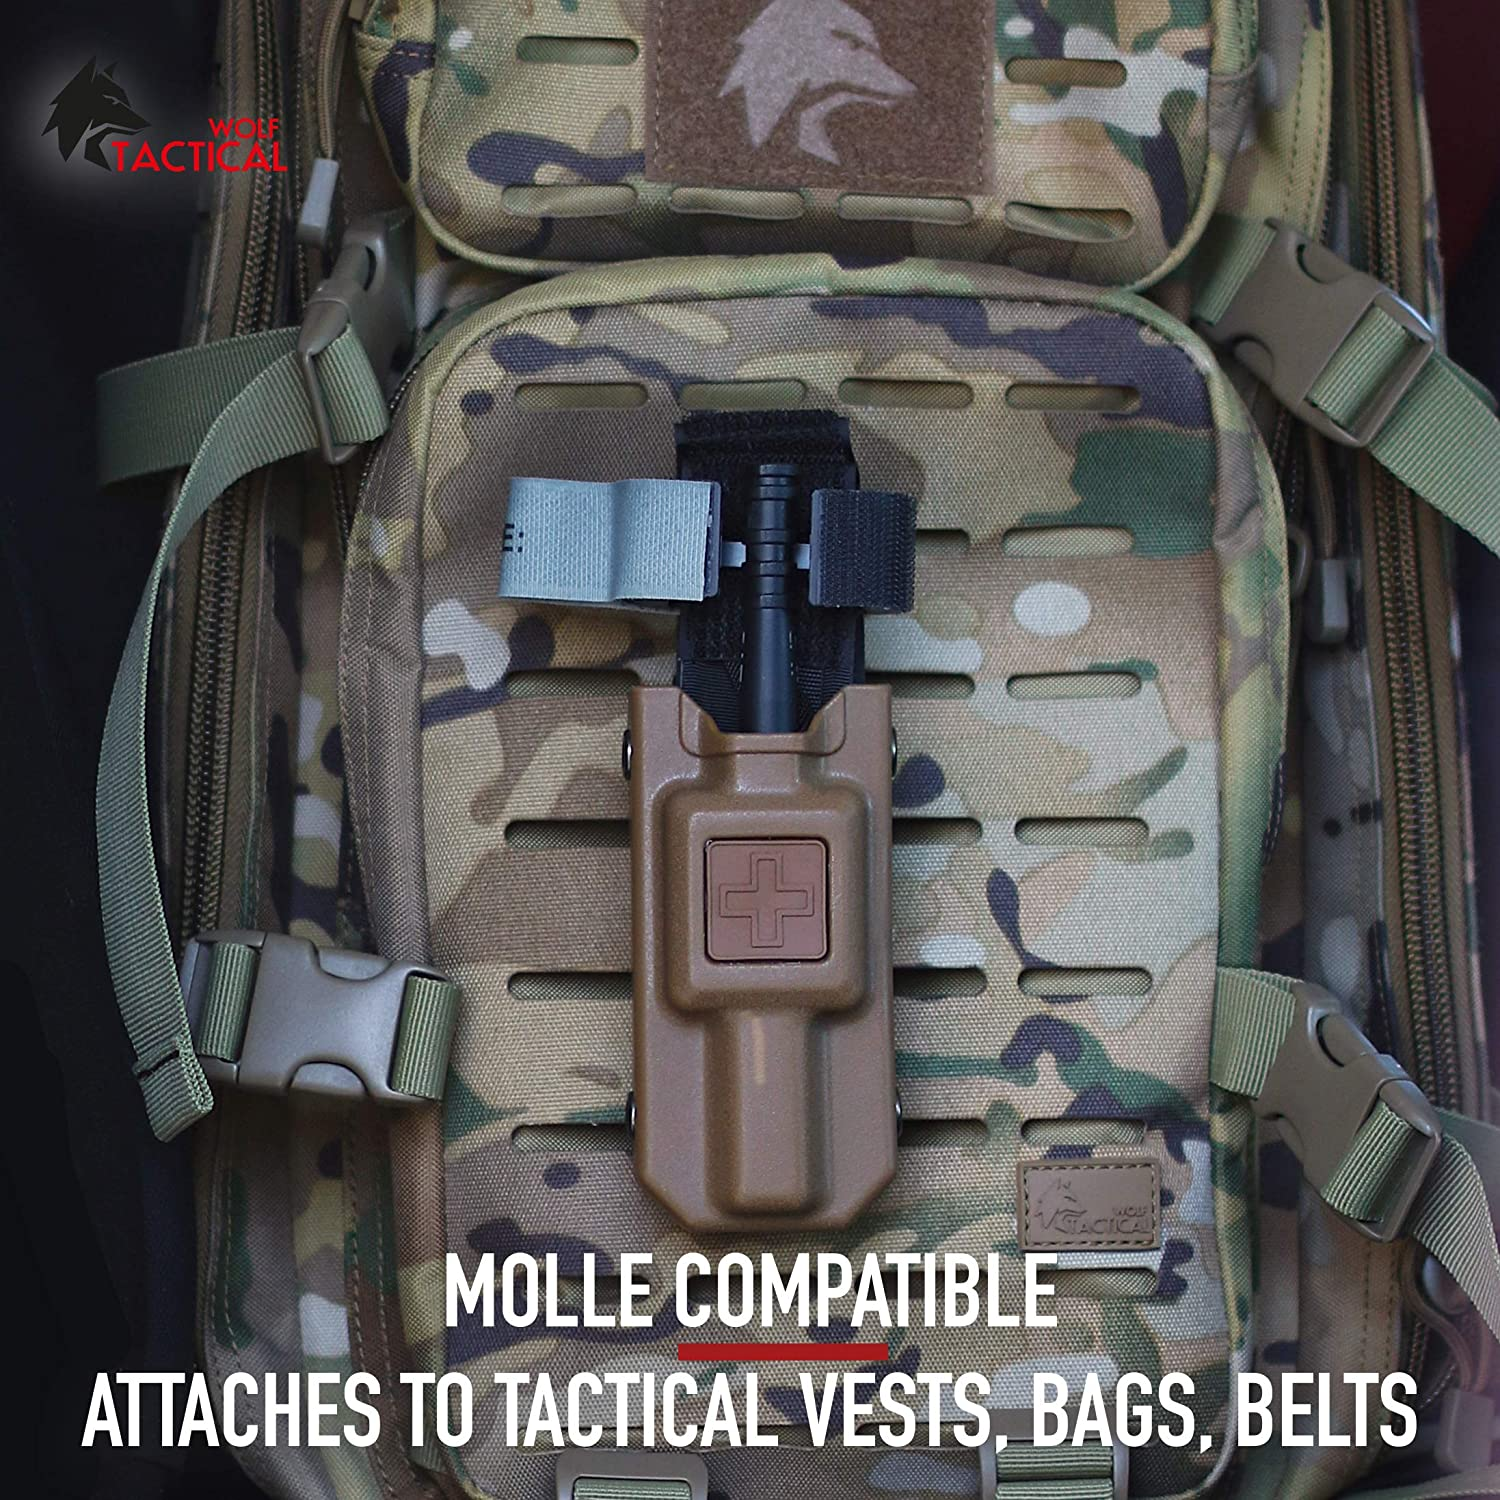 Rigid MOLLE TQ Case or CAT Combat Application Tourniquets Medical Emergency Accessory for Backpacks Vests Belts Bags WOLF TACTICAL Tourniquet Holder